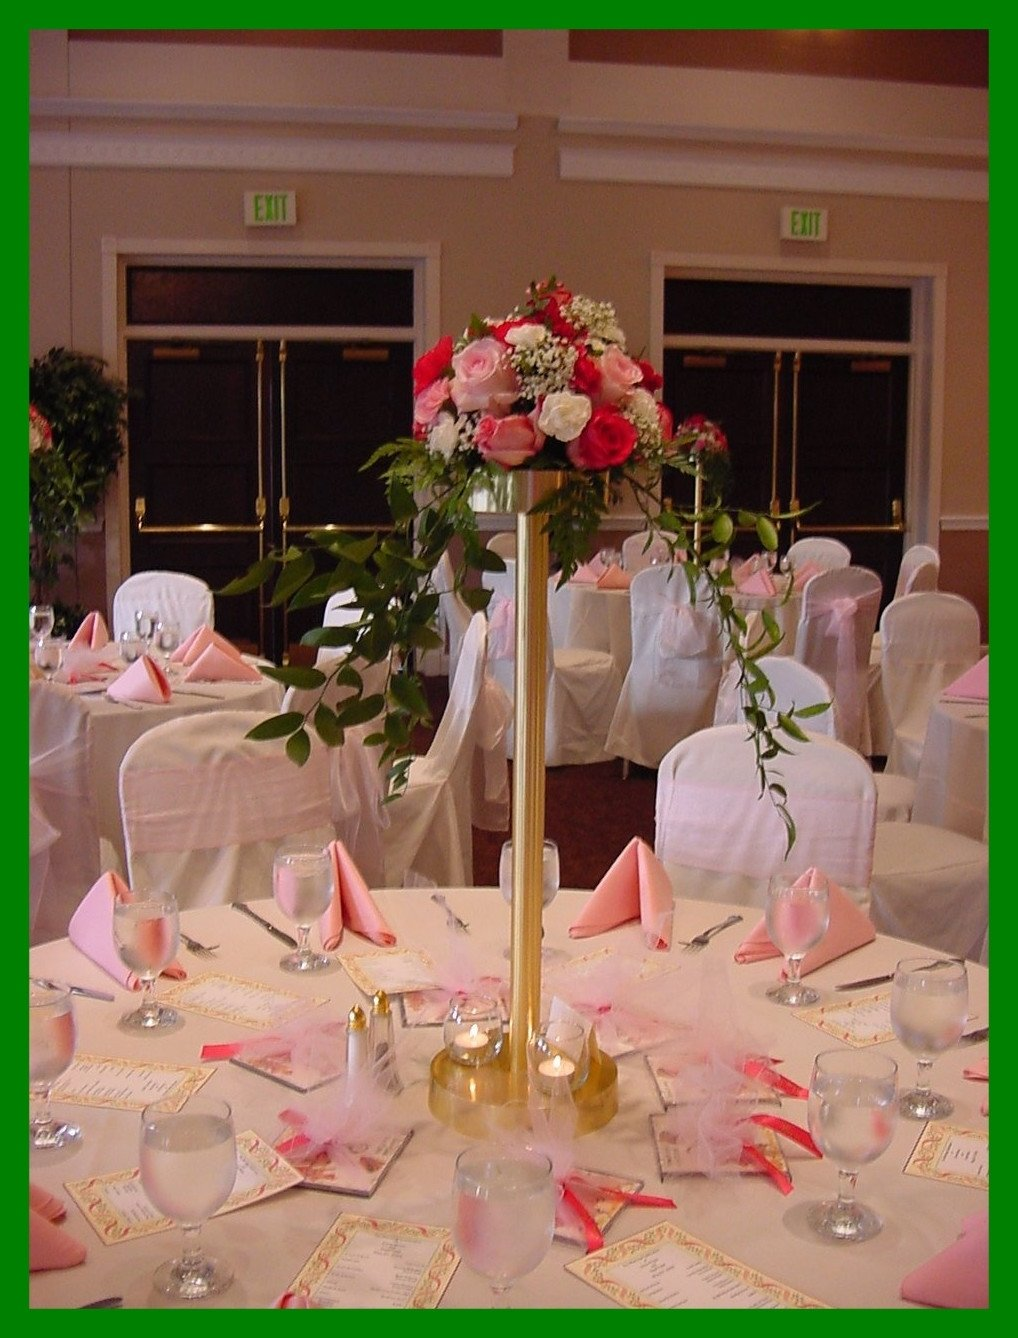 10 Trendy Wedding Reception Table Decorations Ideas stunning diy wedding reception table decoration ideas cheap and 2020